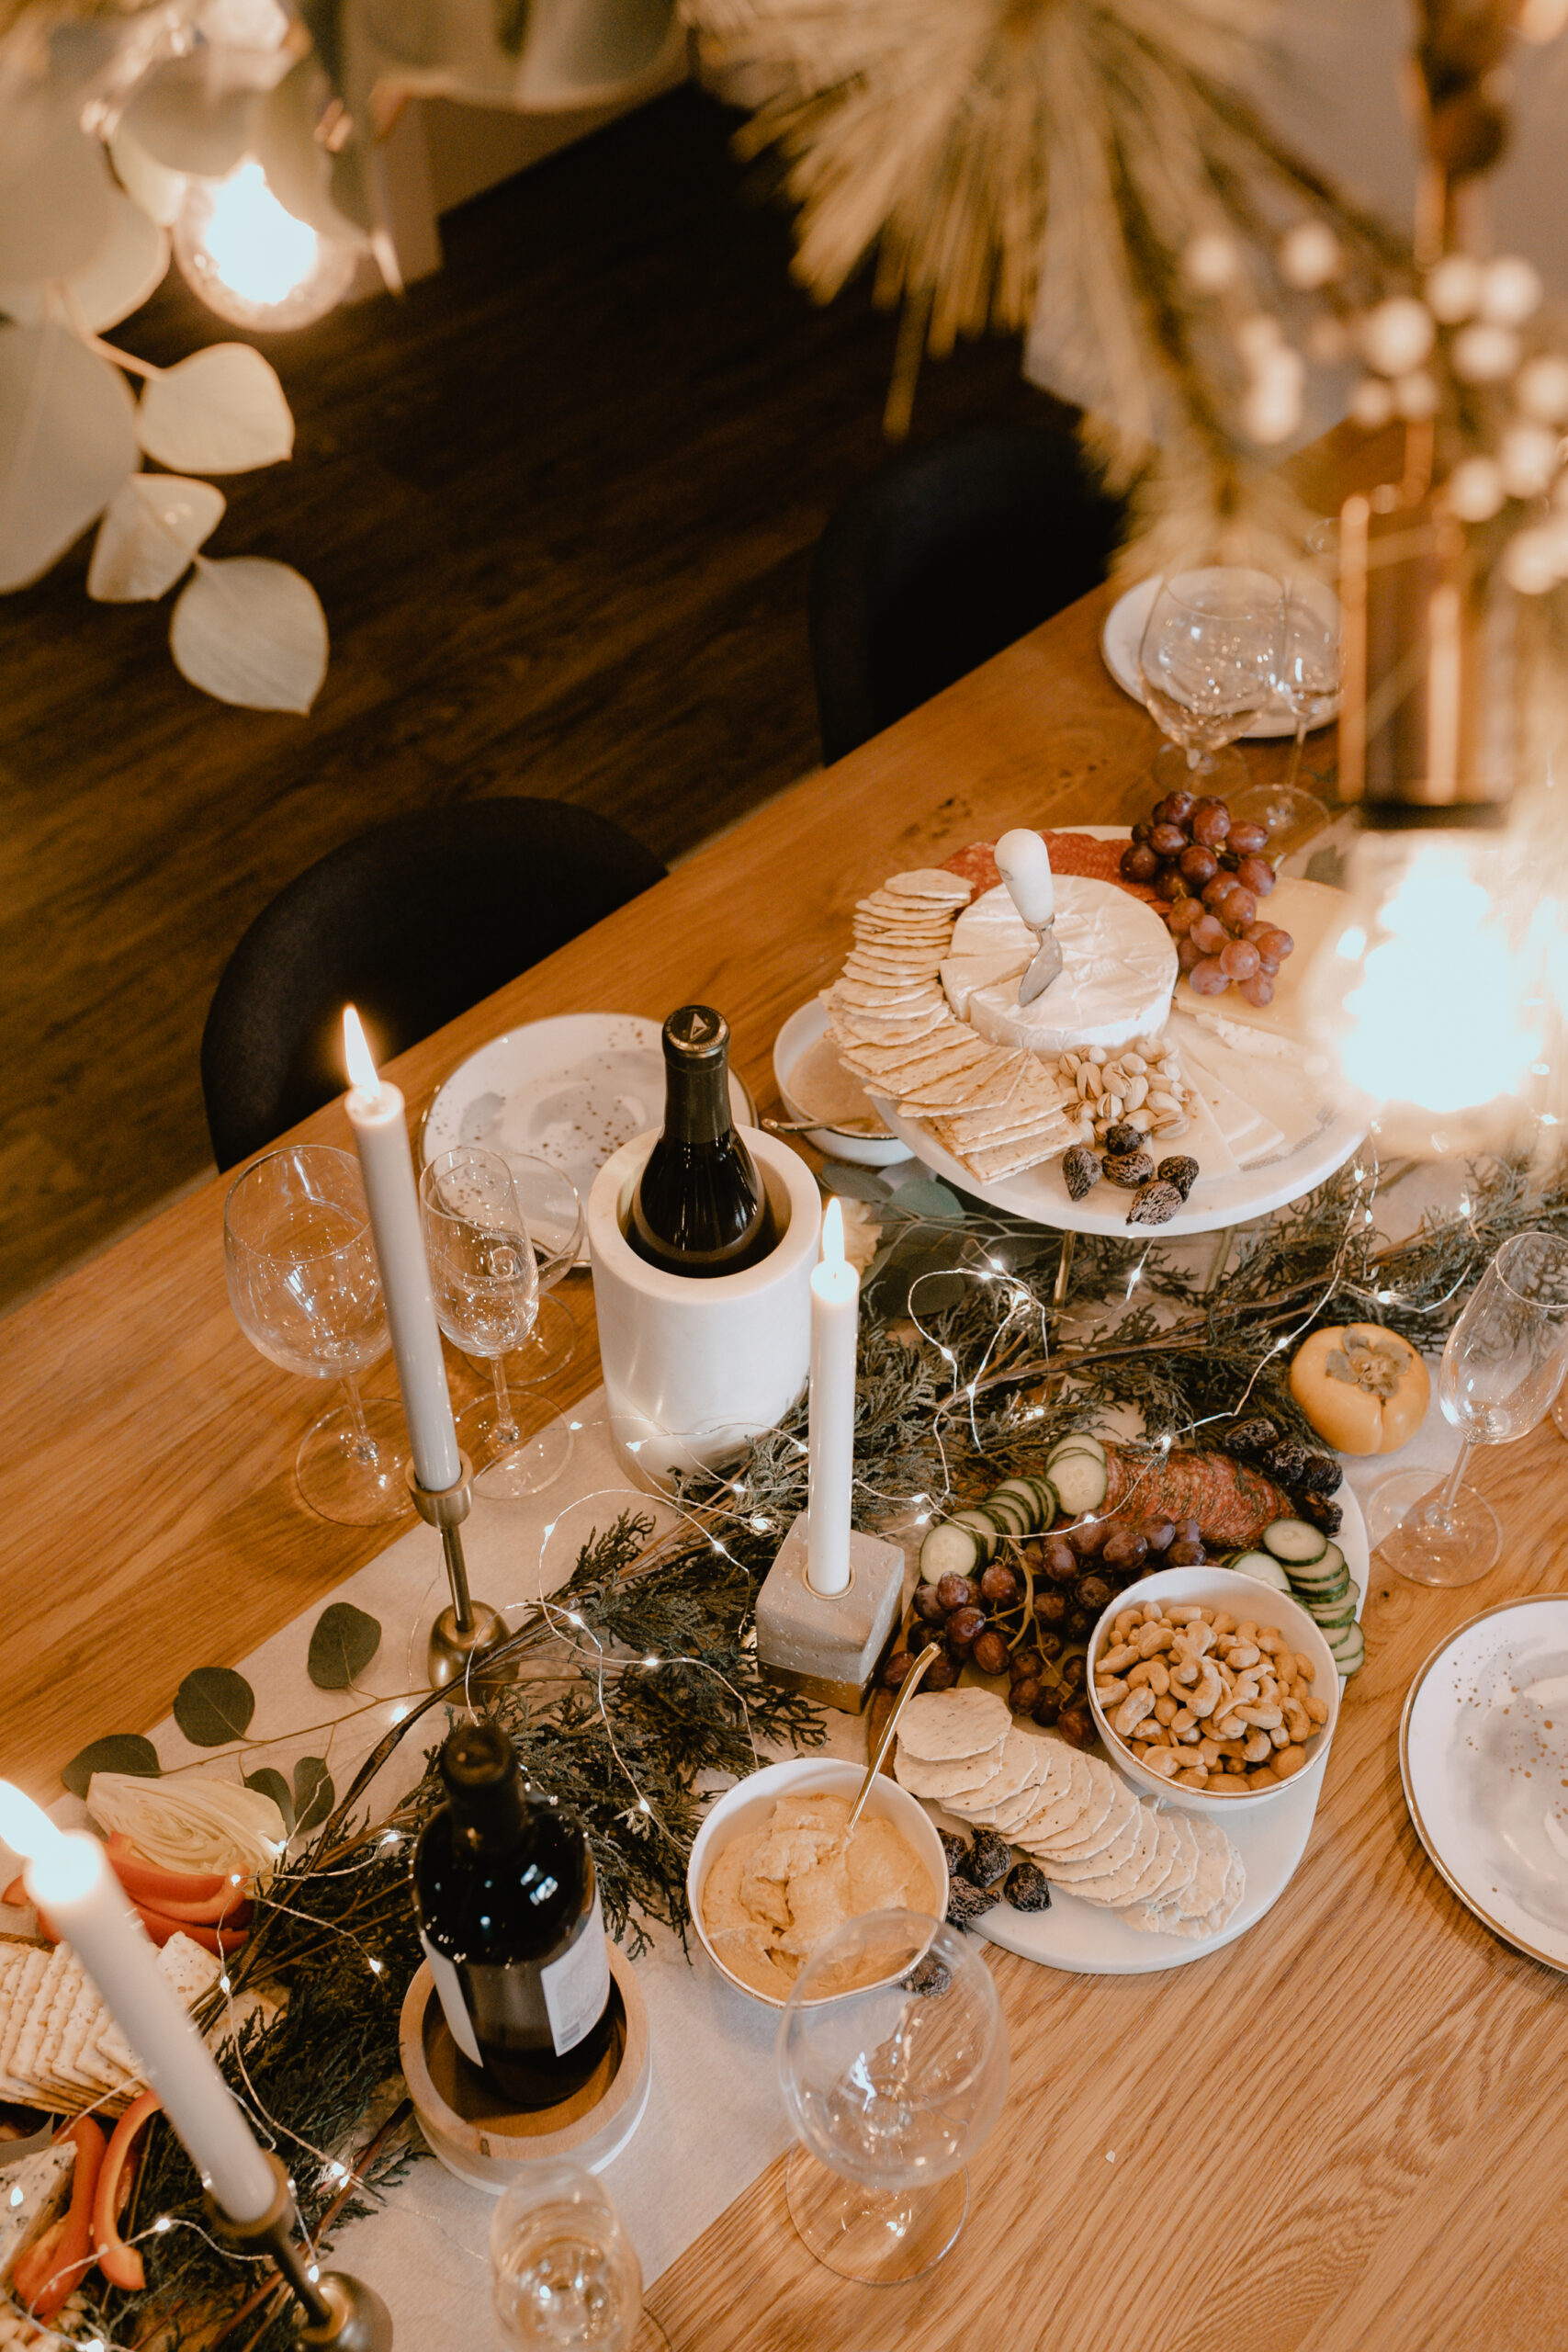 set the table to gather with friends this holiday season! #verymerry #charcuterieboard #holidayhome #holidaydecorating #merrychristmas